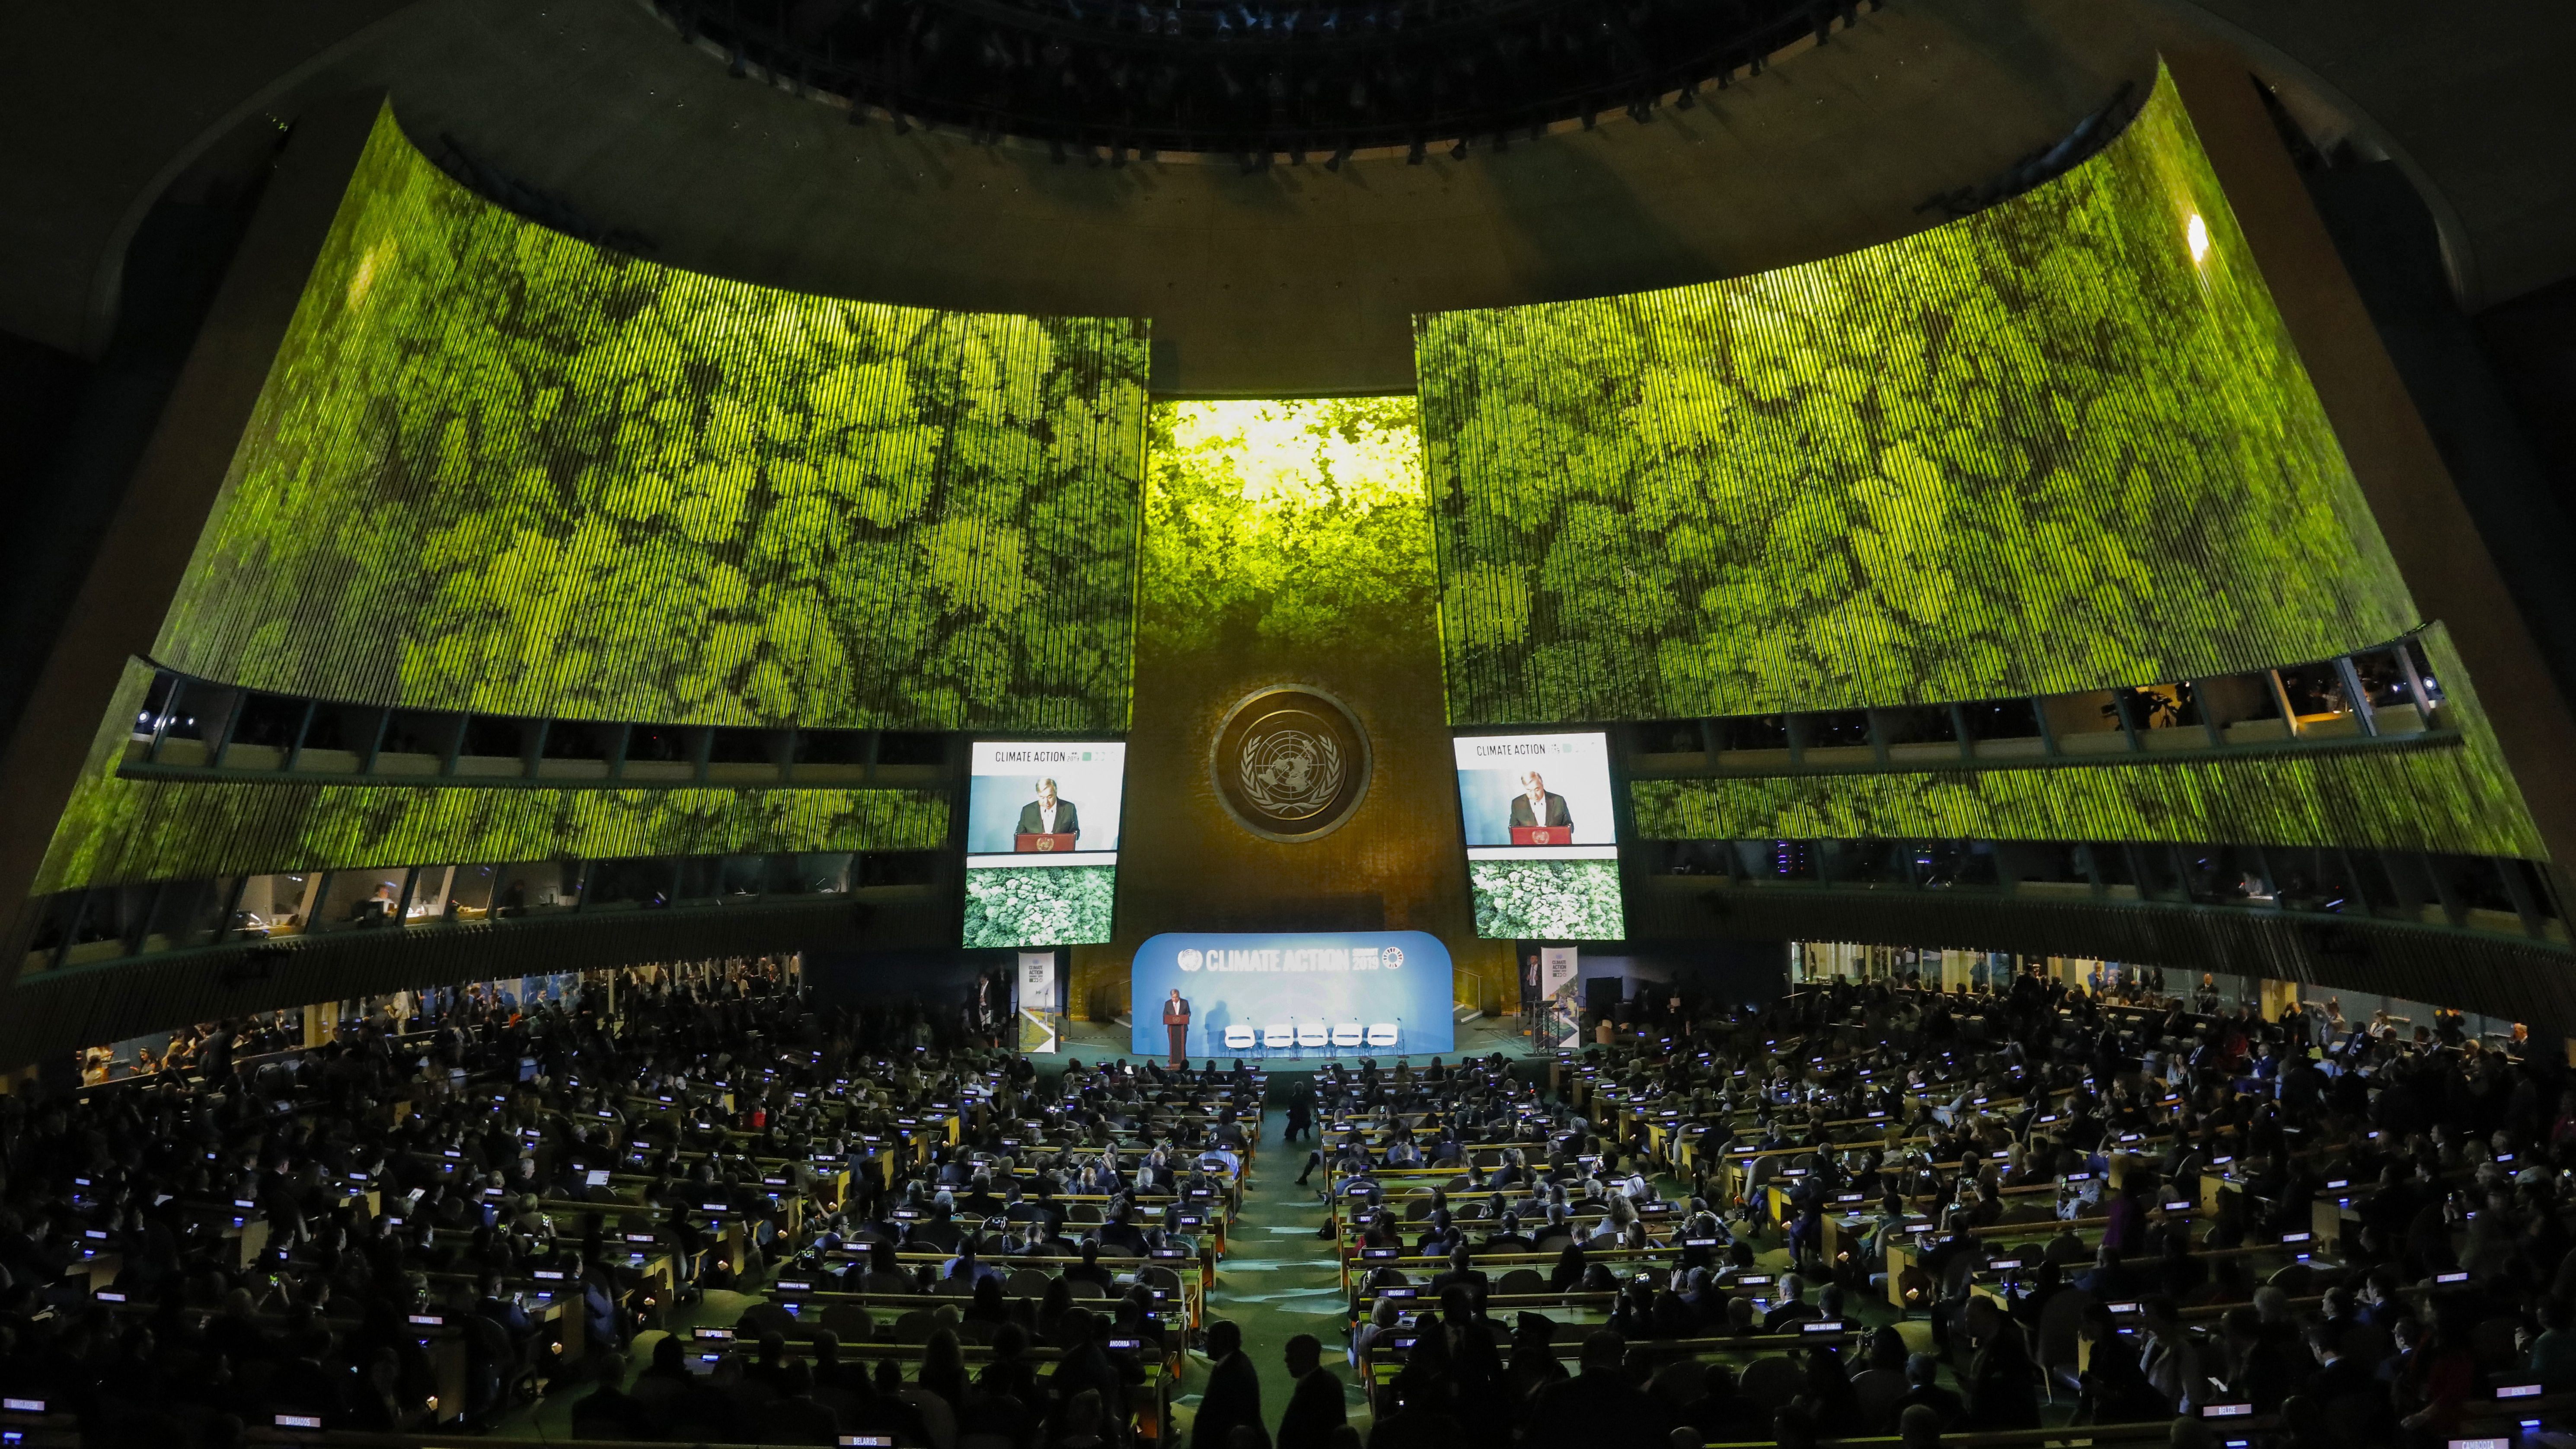 United Nations Secretary General Guterres speaks during the opening of the 2019 United Nations Climate Action Summit at U.N. headquarters in New York City, New York, U.S.